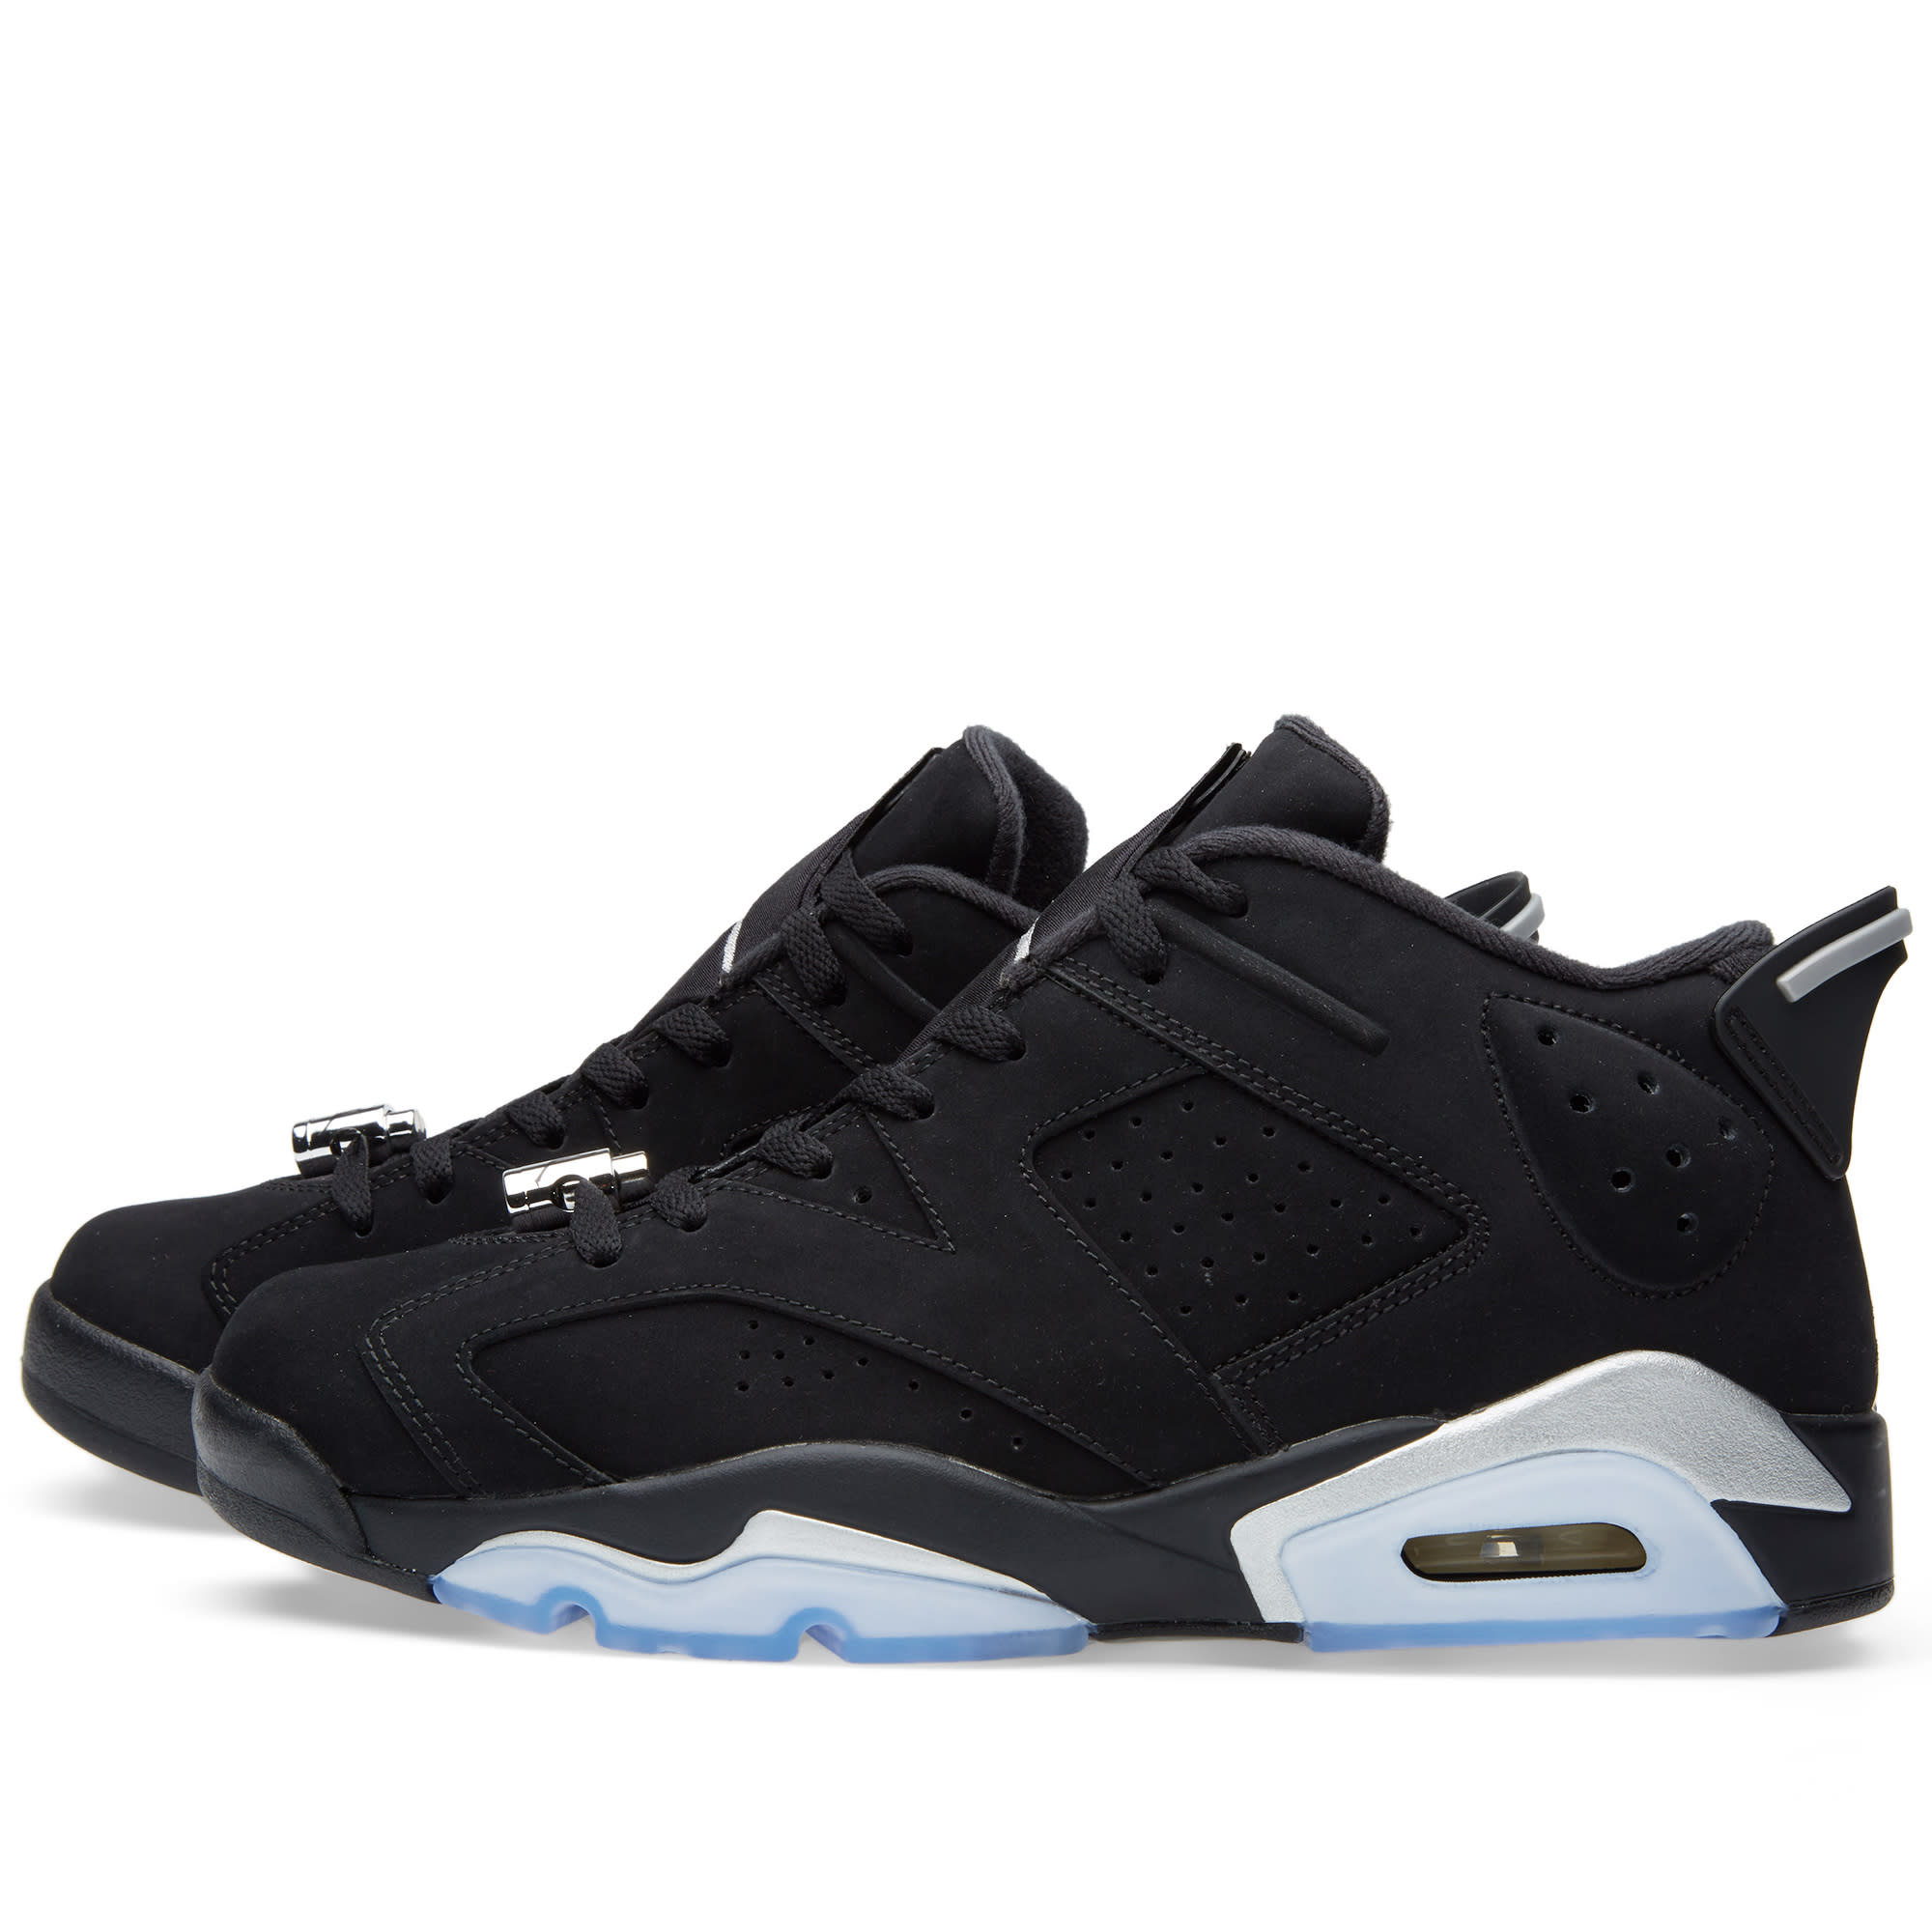 9ff240fe25ab Nike Air Jordan 6 Retro Low Black